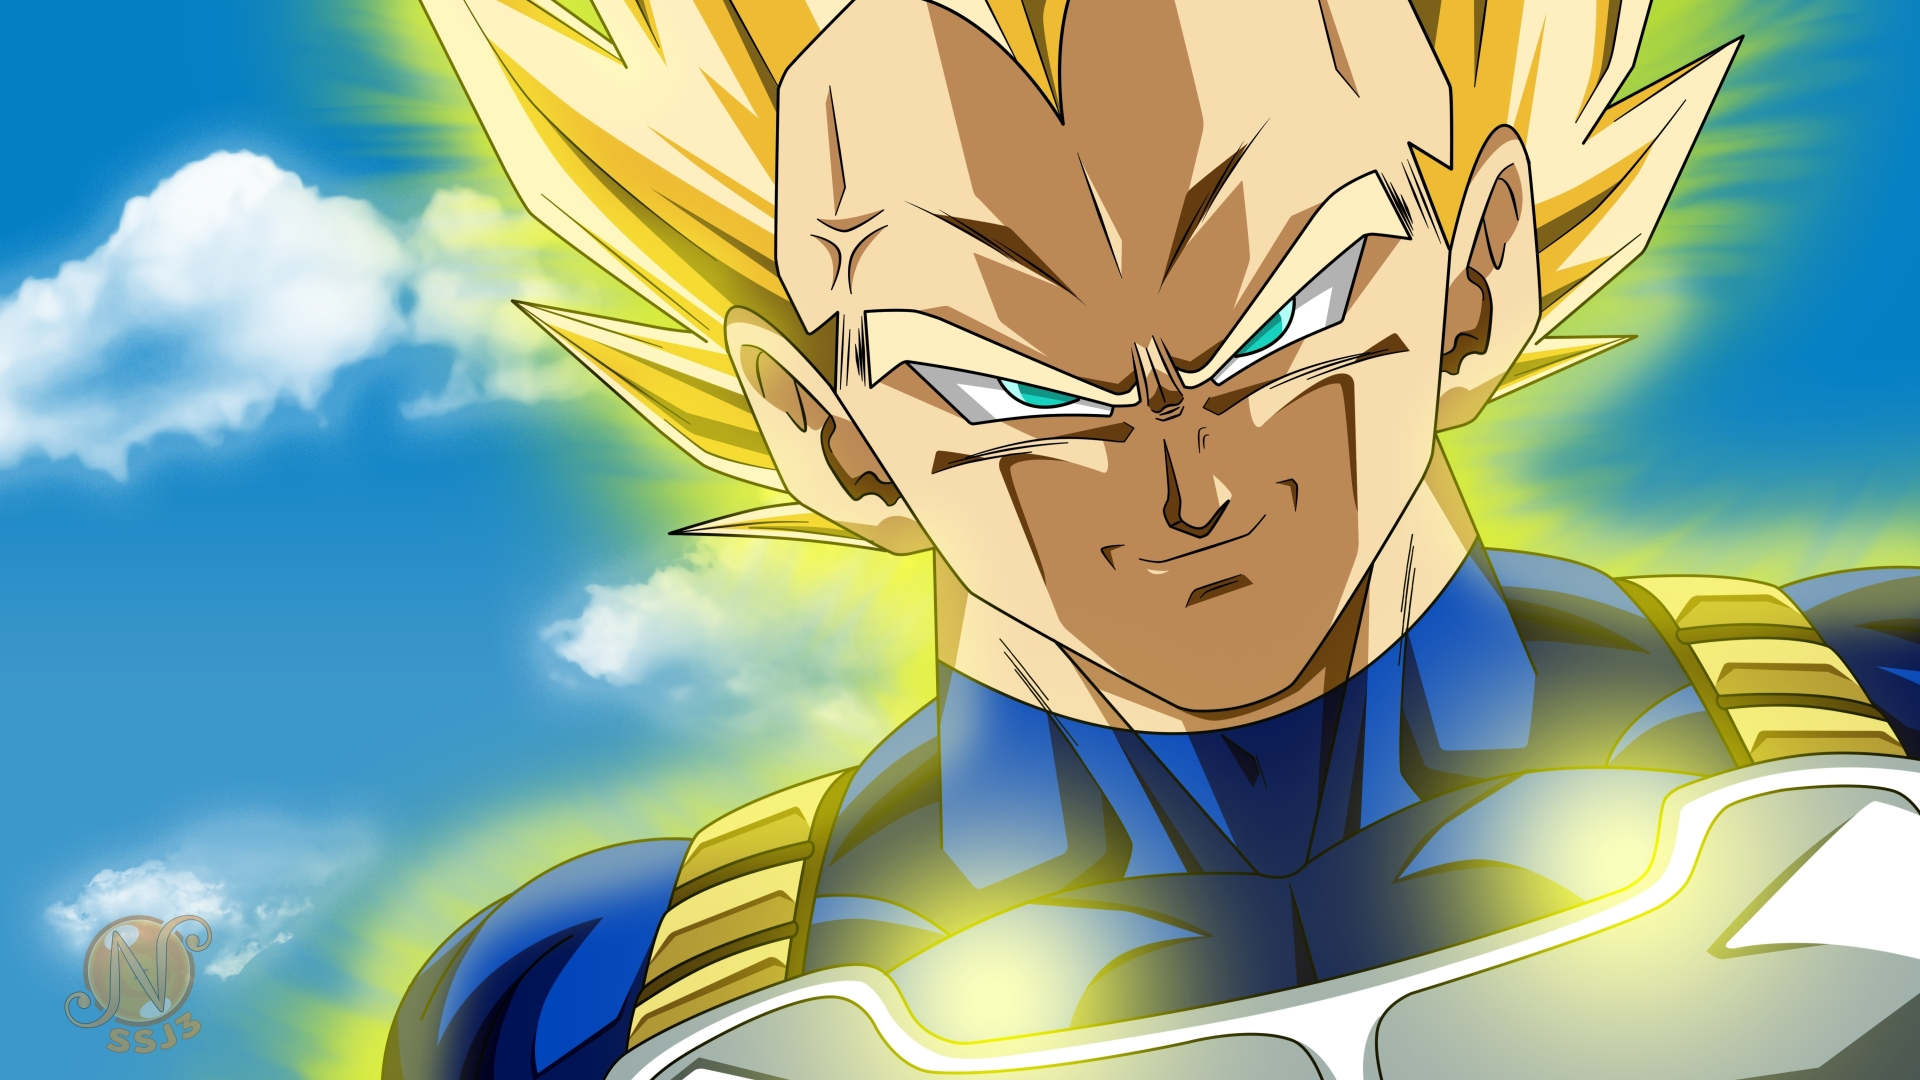 1920x1080 Vegeta Dragon Ball 4k 1080p Laptop Full Hd Wallpaper Hd Anime 4k Wallpapers Images Photos And Background